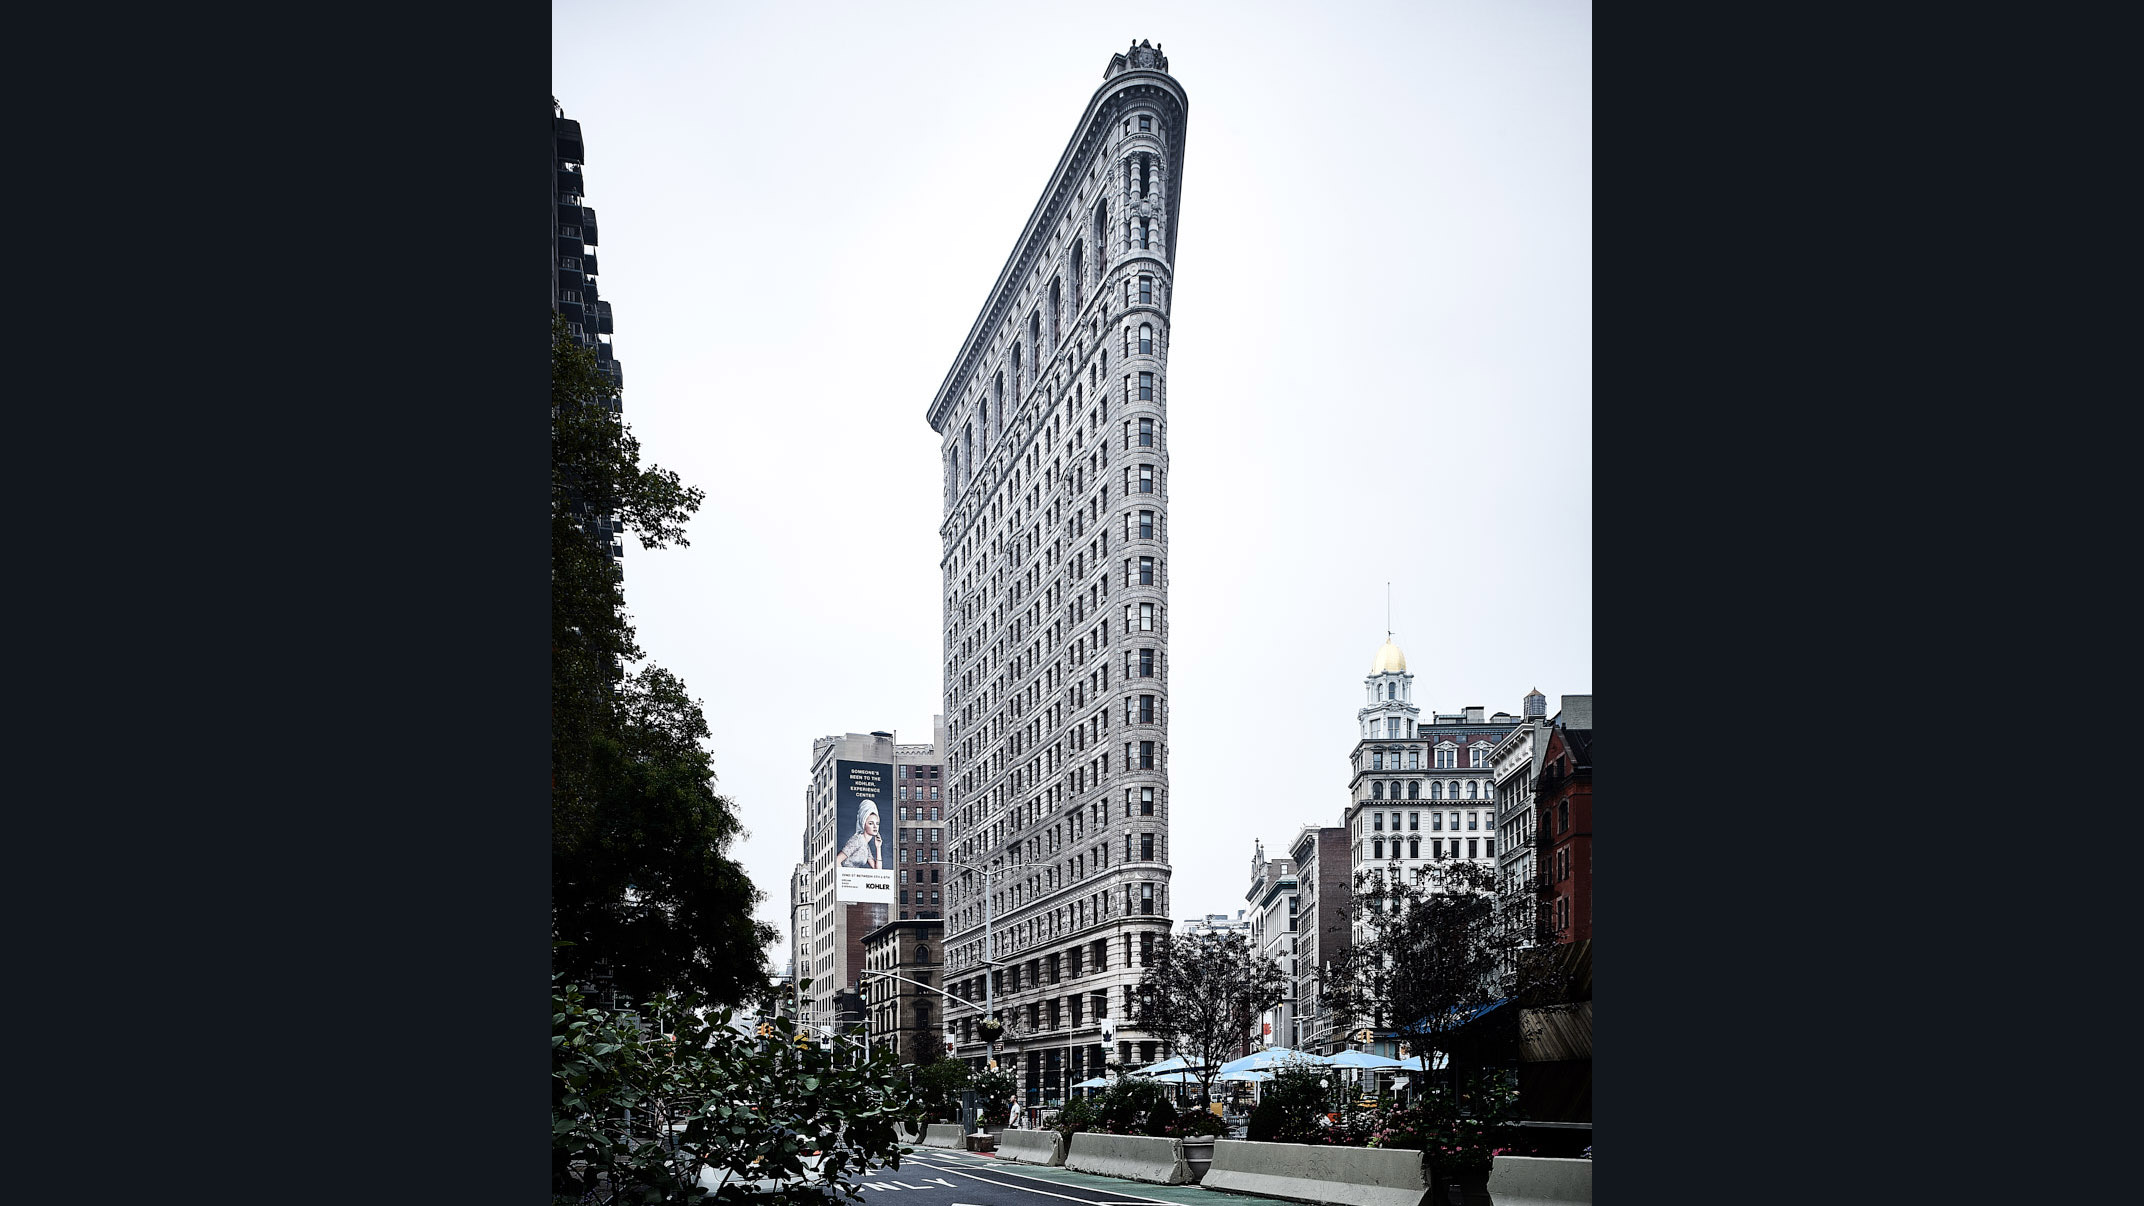 NYC_Flatiron building